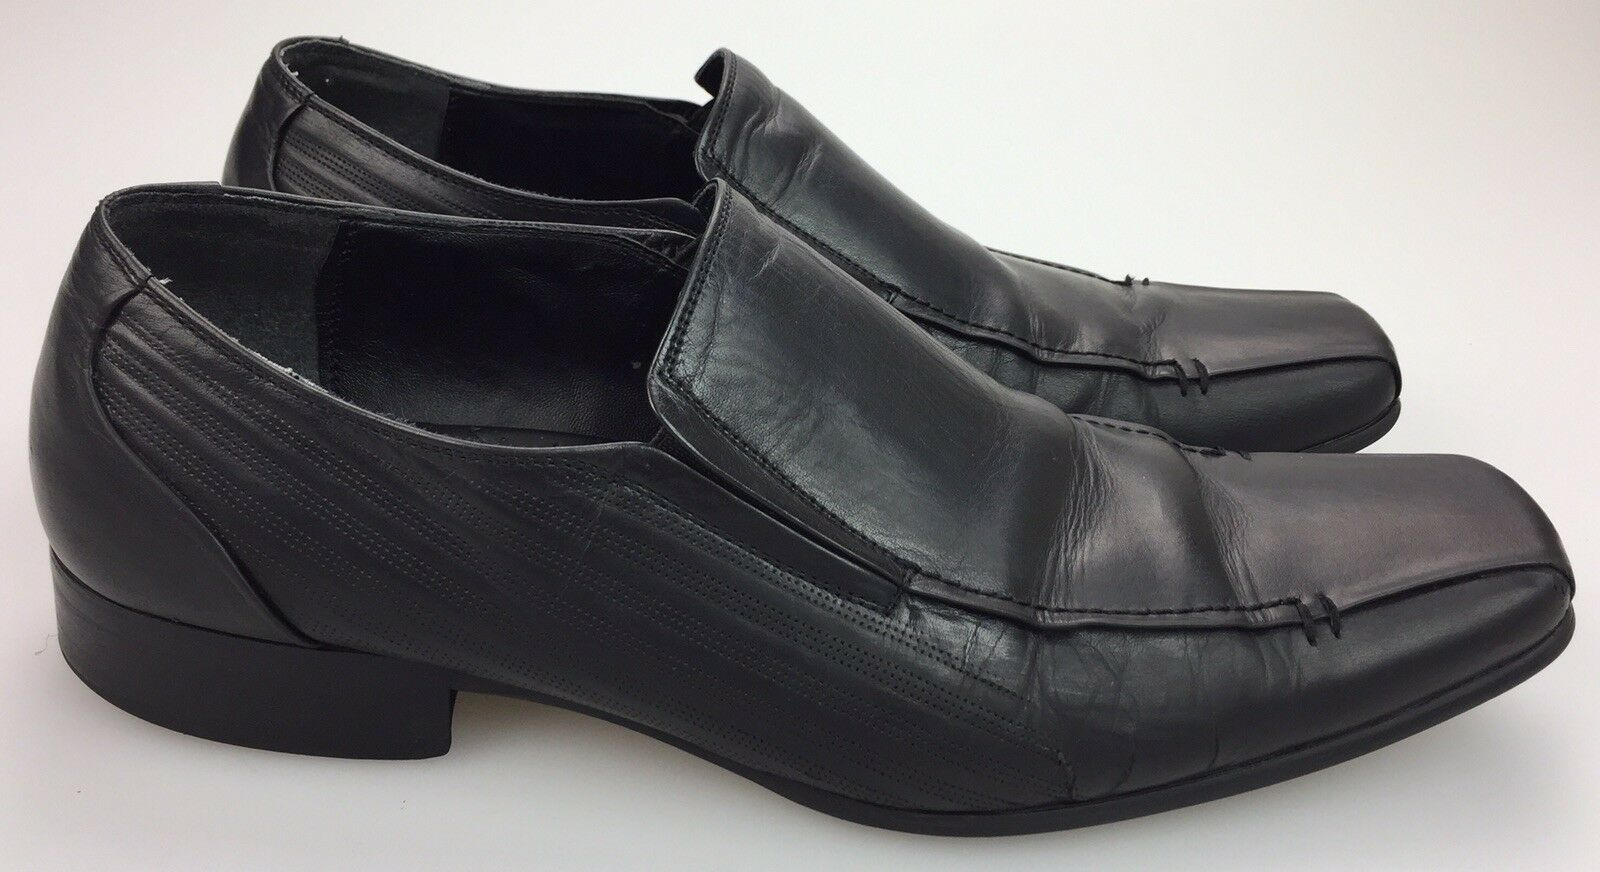 Kenneth Cole New York Magic One Le Black Leather Slip-On Loafer Shoes Mens 10 M